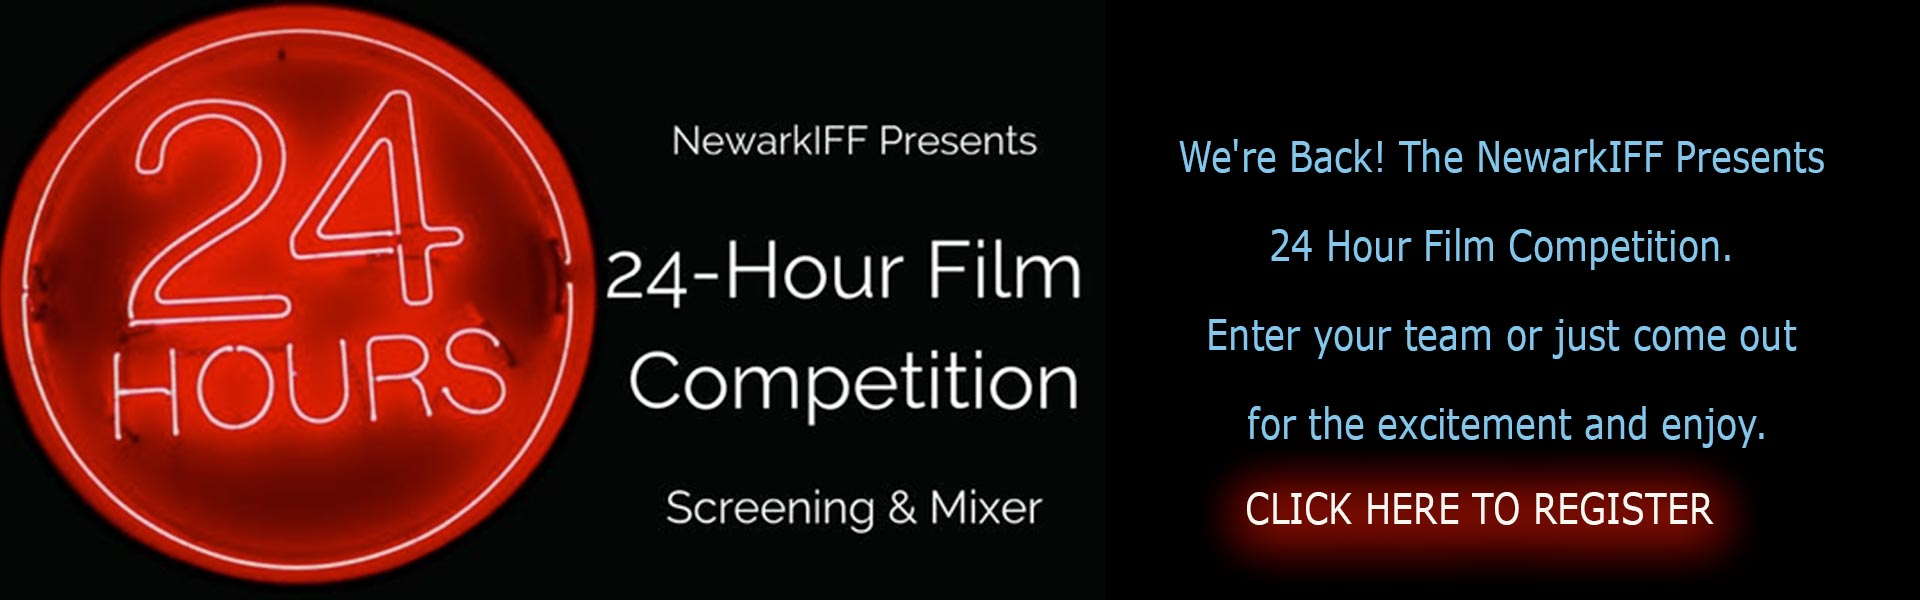 Newark International Film Festival's Film Race, 2